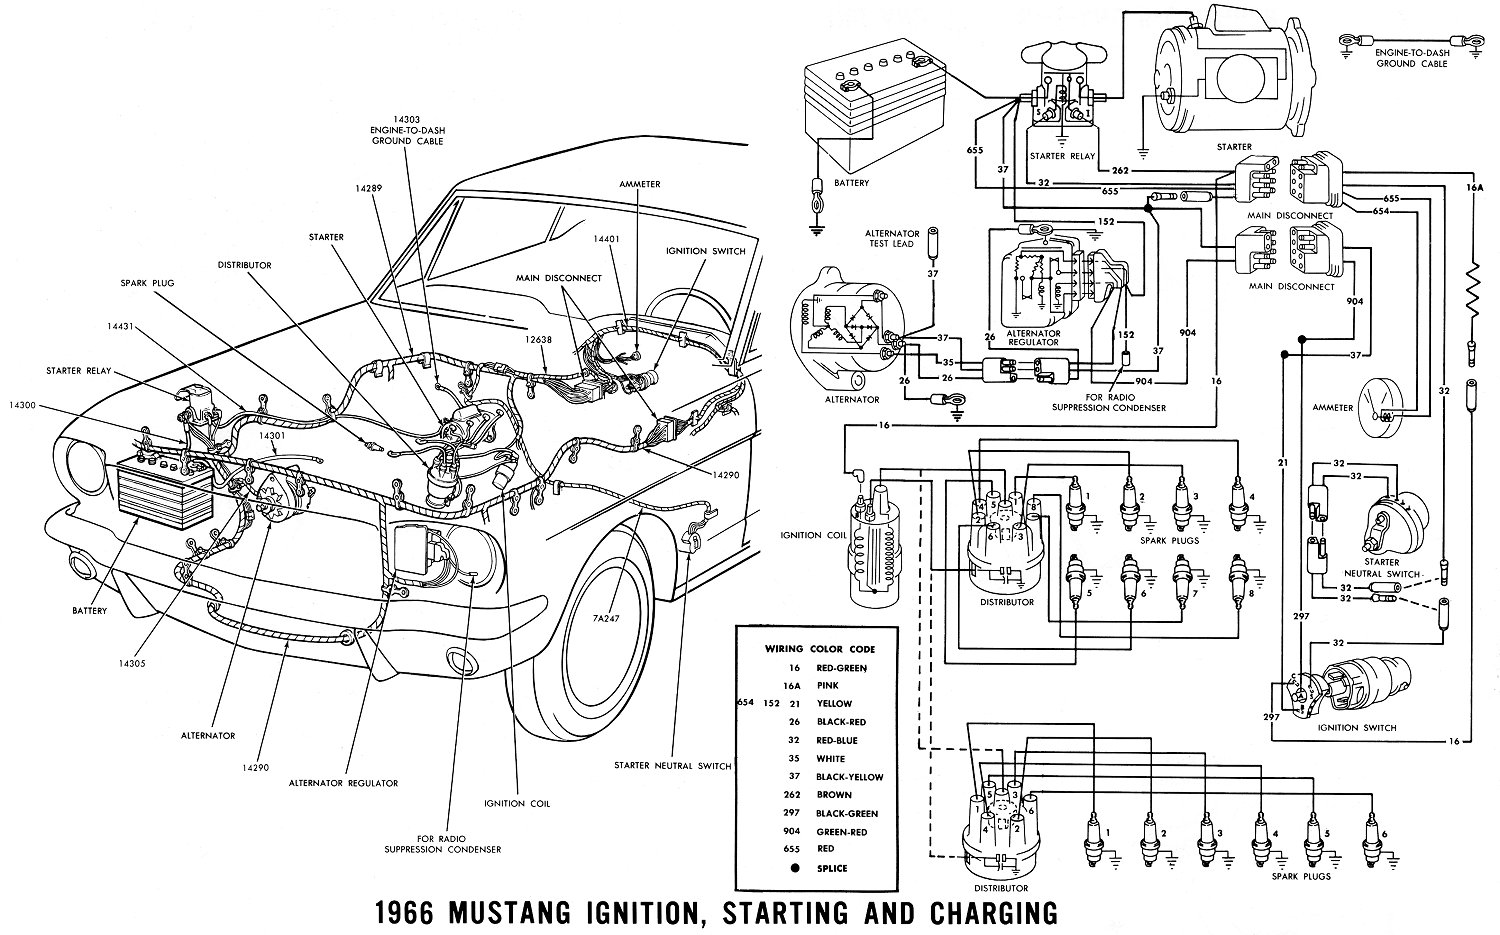 1966 Mustang Ignition Wiring Diagram on 2000 honda civic radio wiring harness